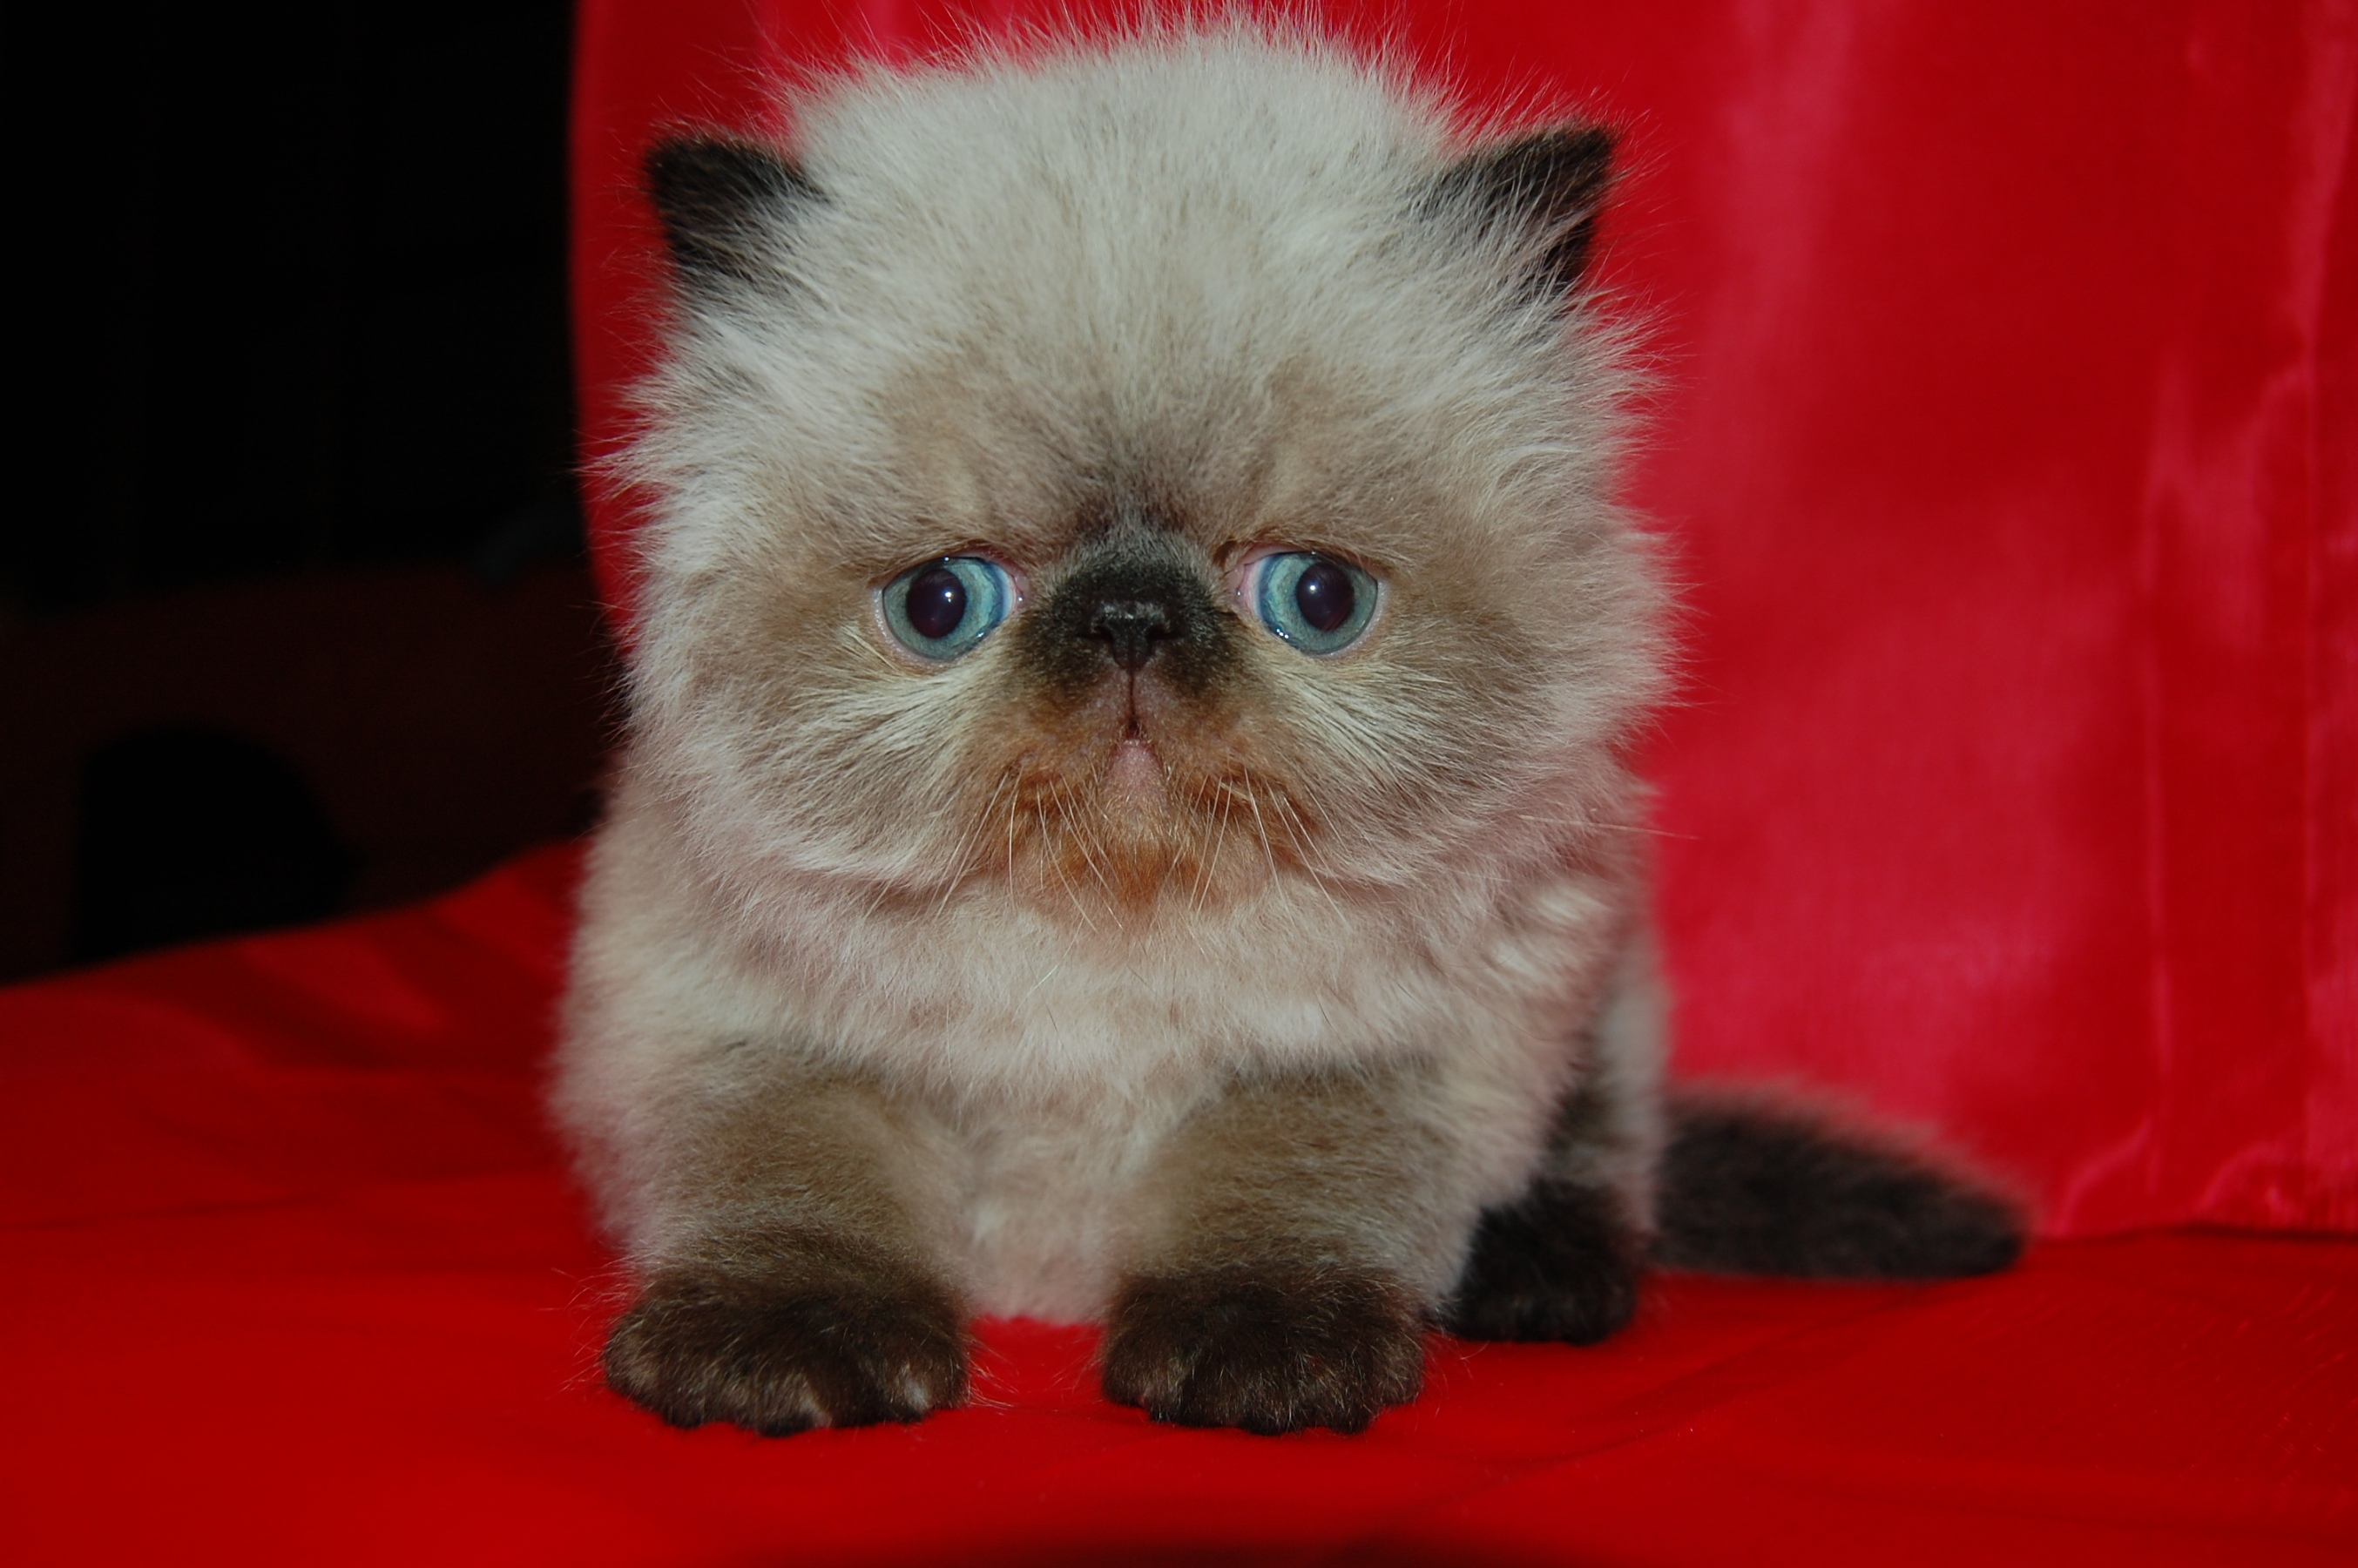 Bonny Himalayan/Colorpoint Persian kitten wallpaper